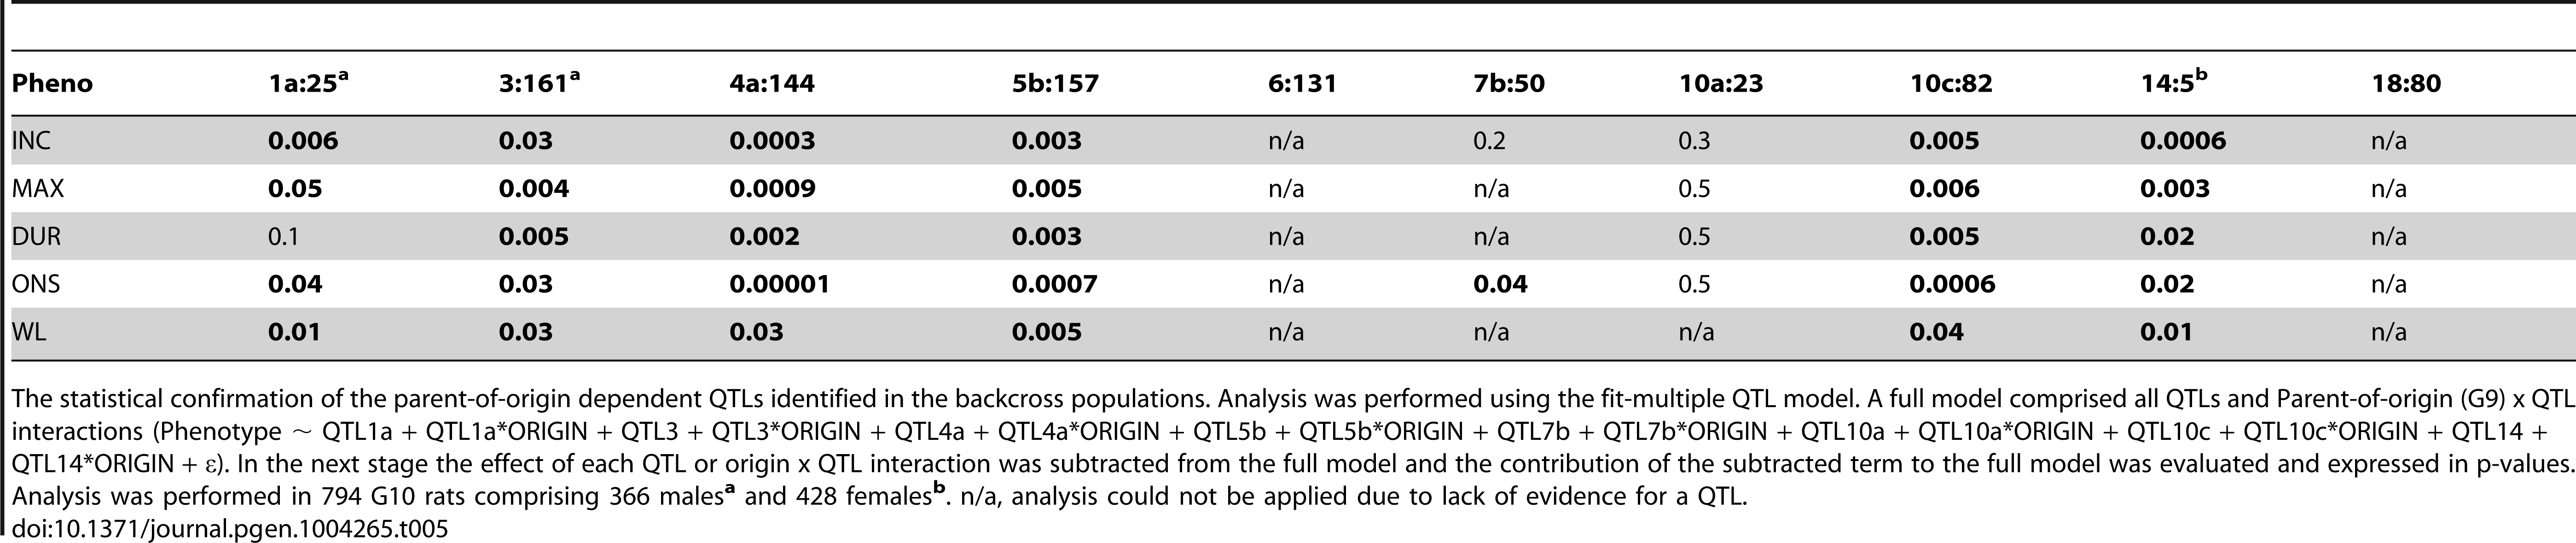 Origin-by-QTL interaction analysis in the (DAxPVG) G10 population.